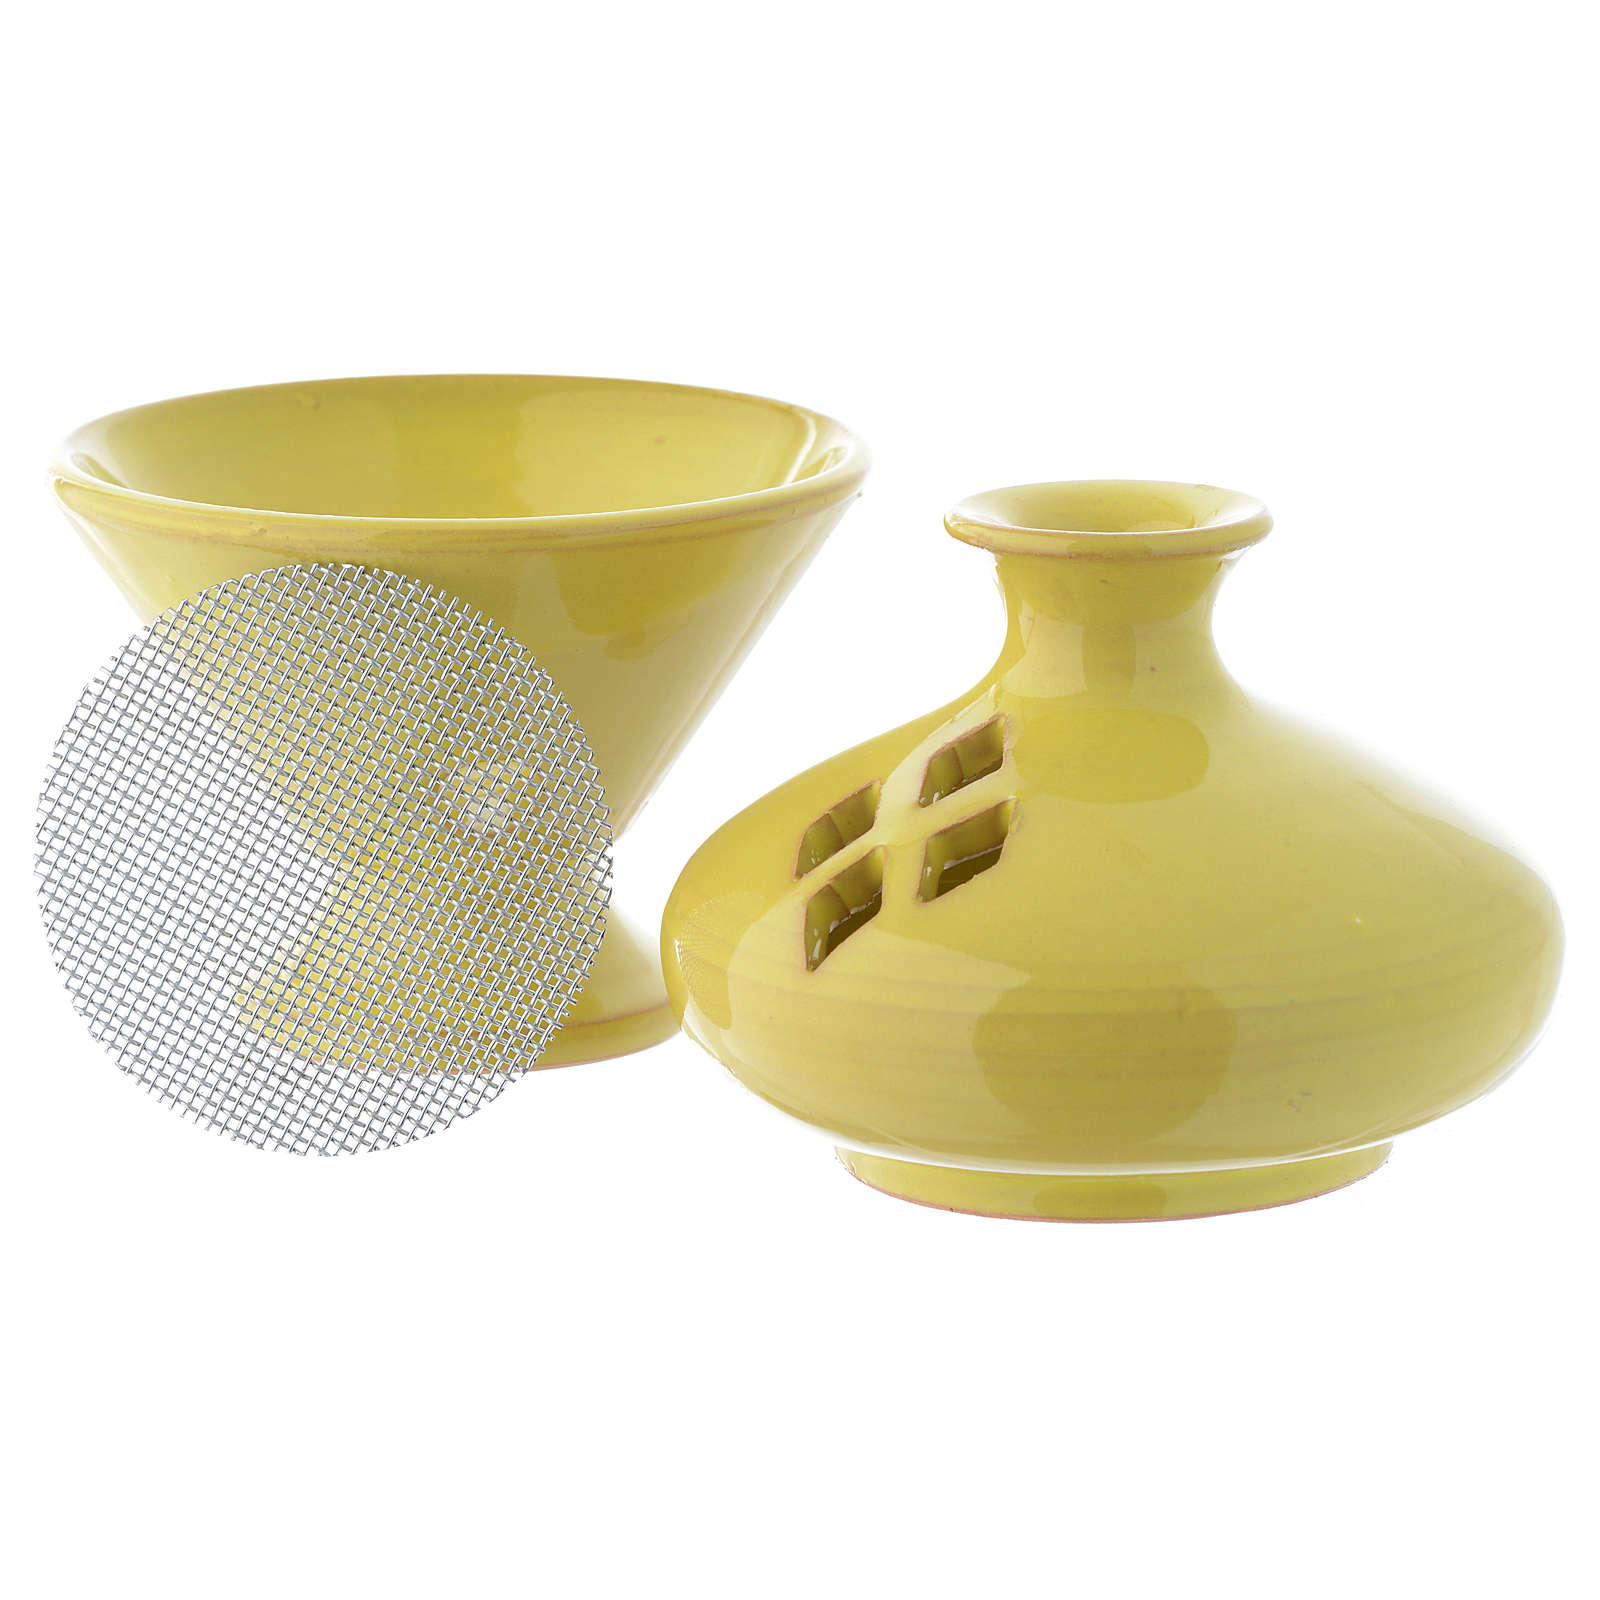 Incense burner in ceramic yellow 13 cm 3